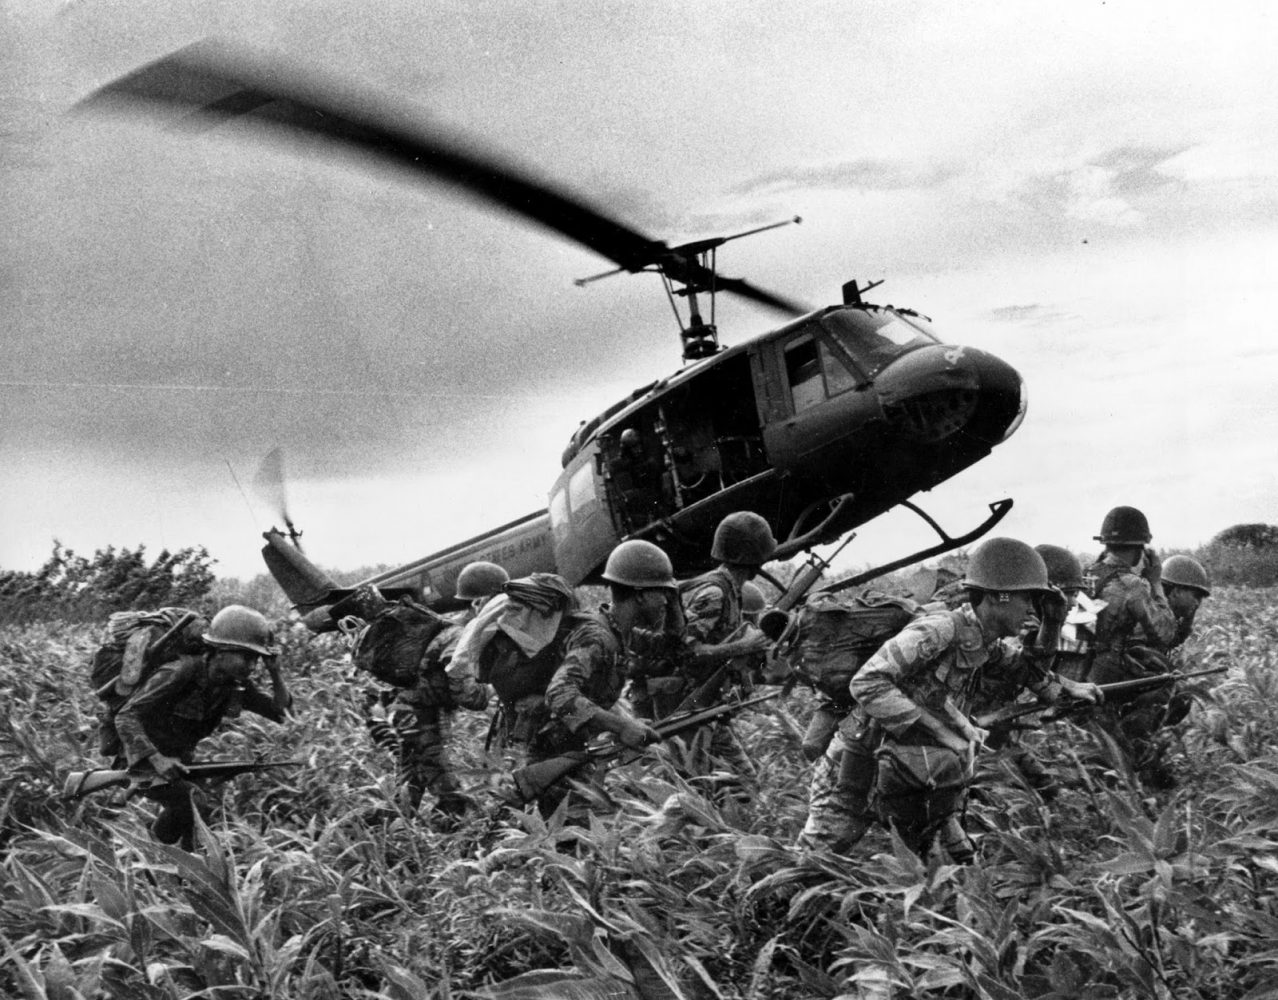 Casualties increased as President Johnson escalated American involvement.